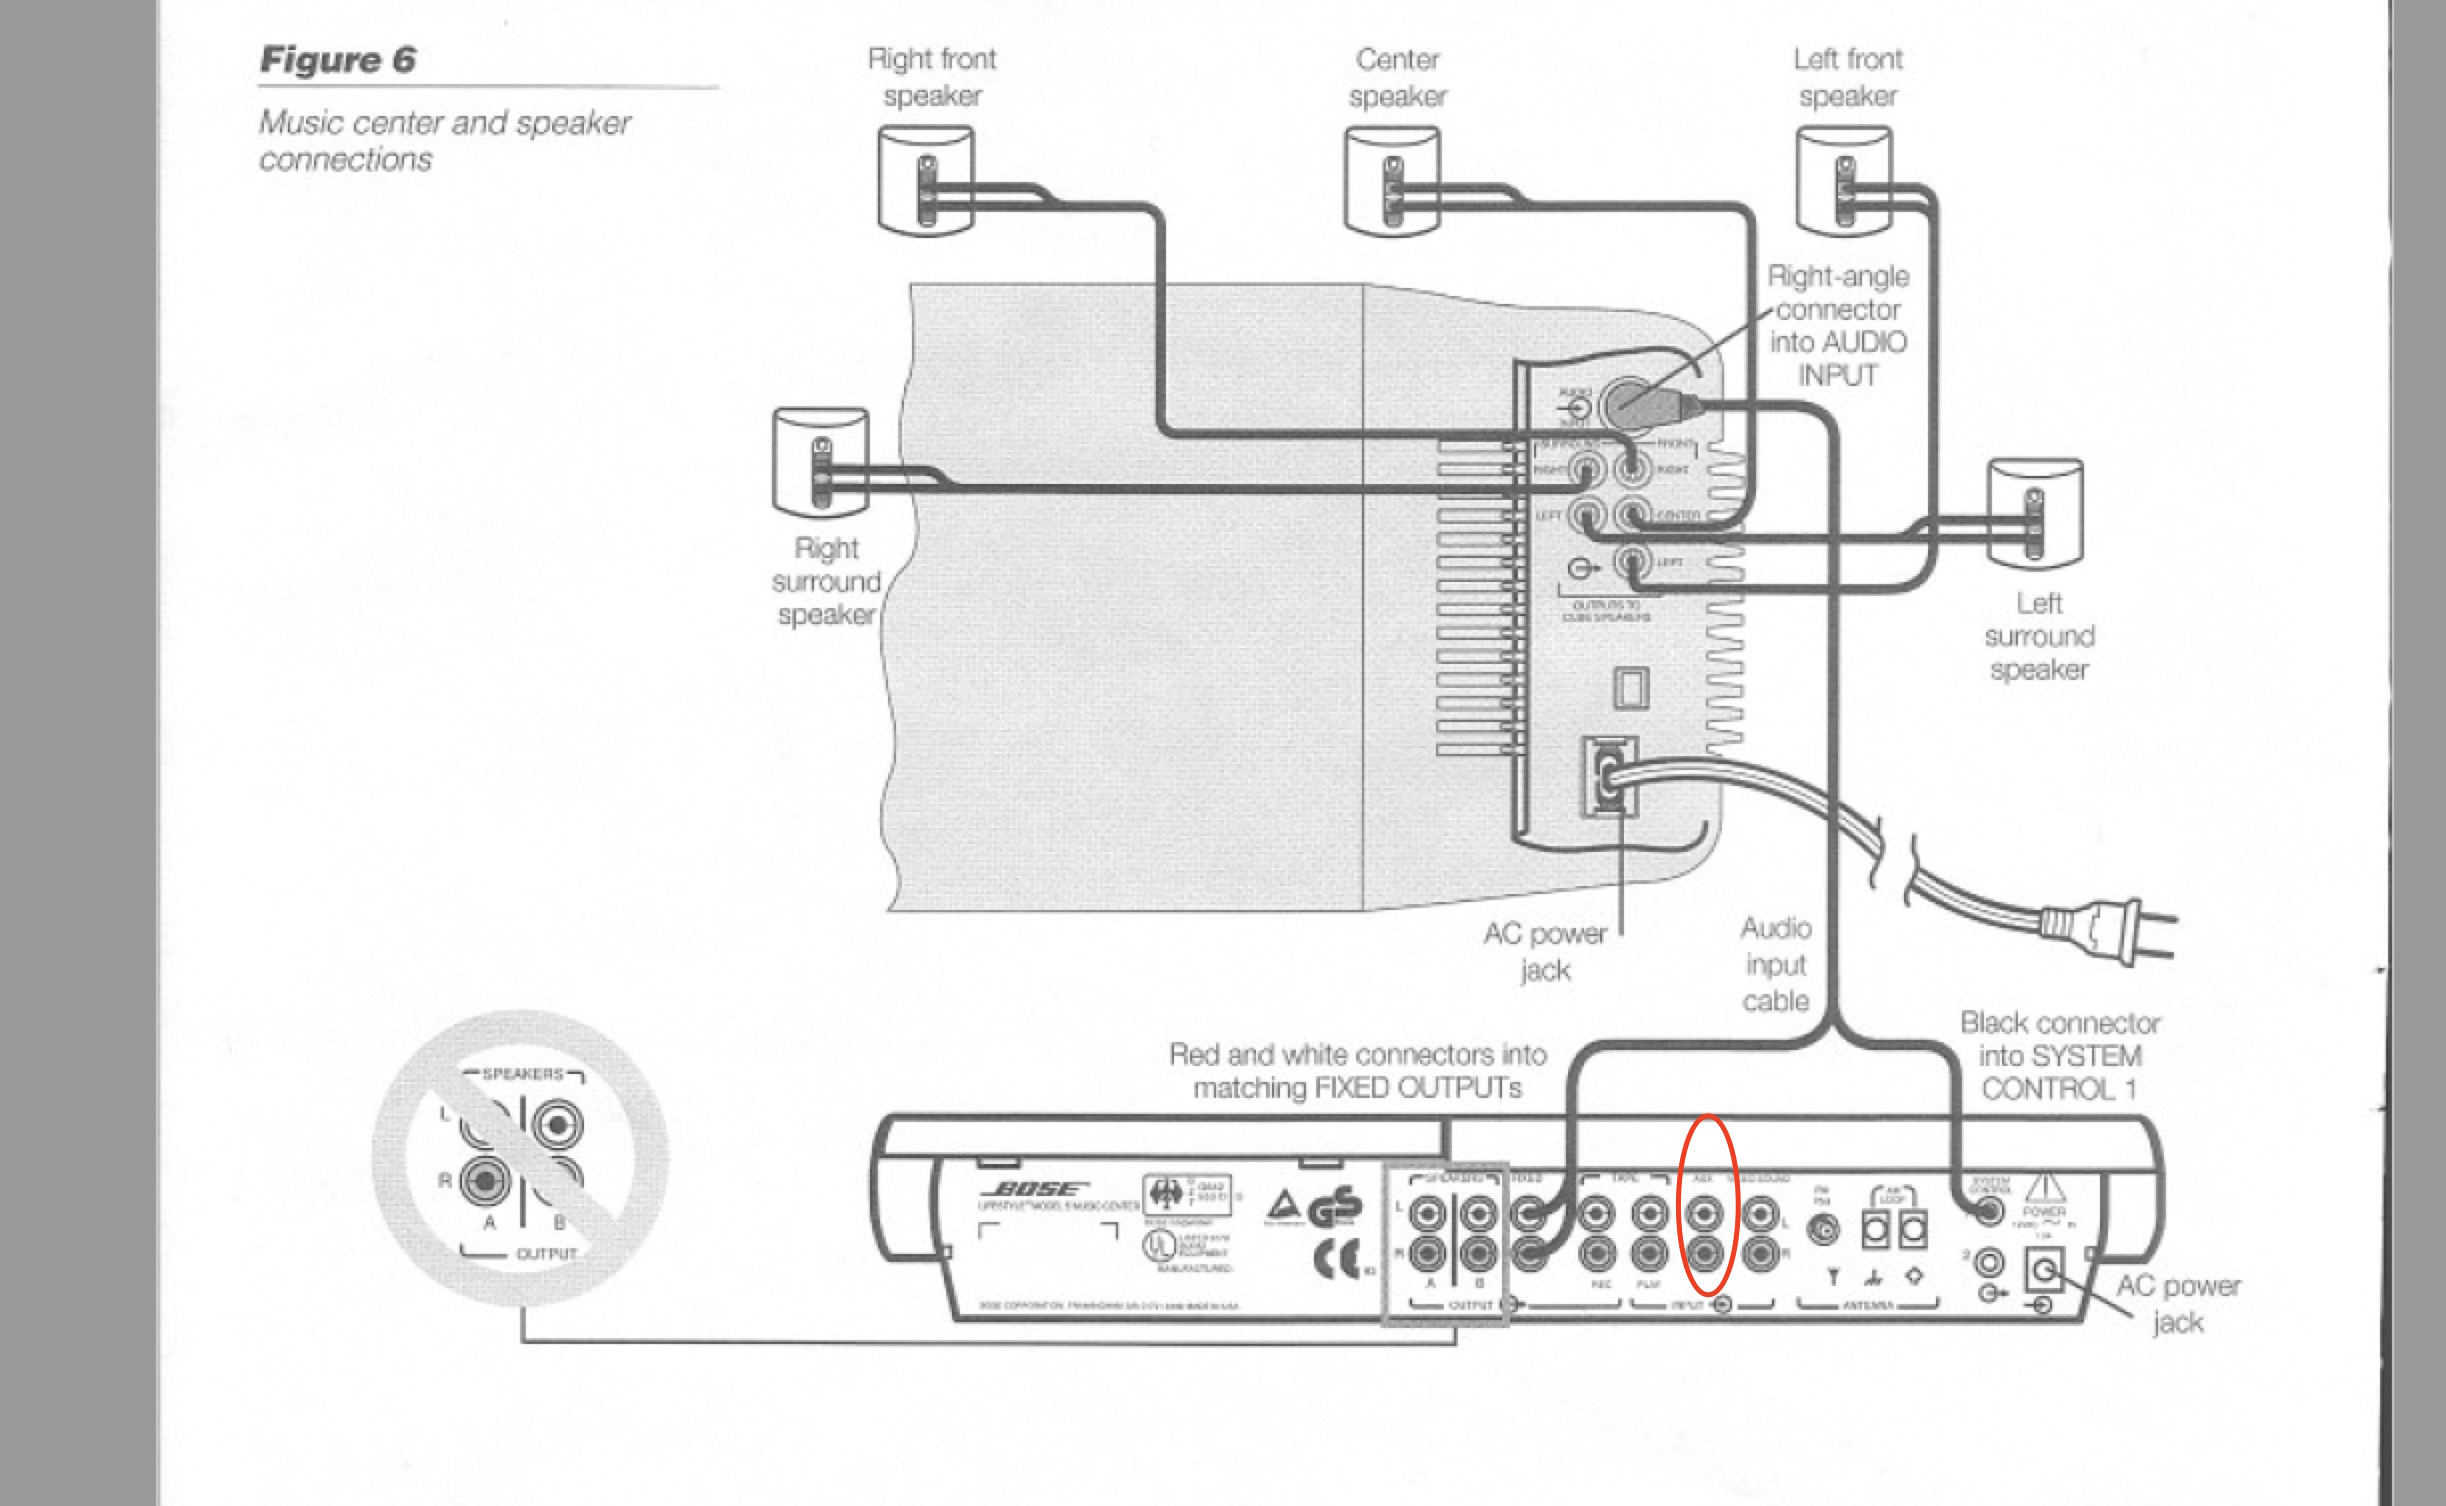 5 1 Bose Speakers System Schematic For Wiring bose ...  Surround Sound Wiring Diagram on